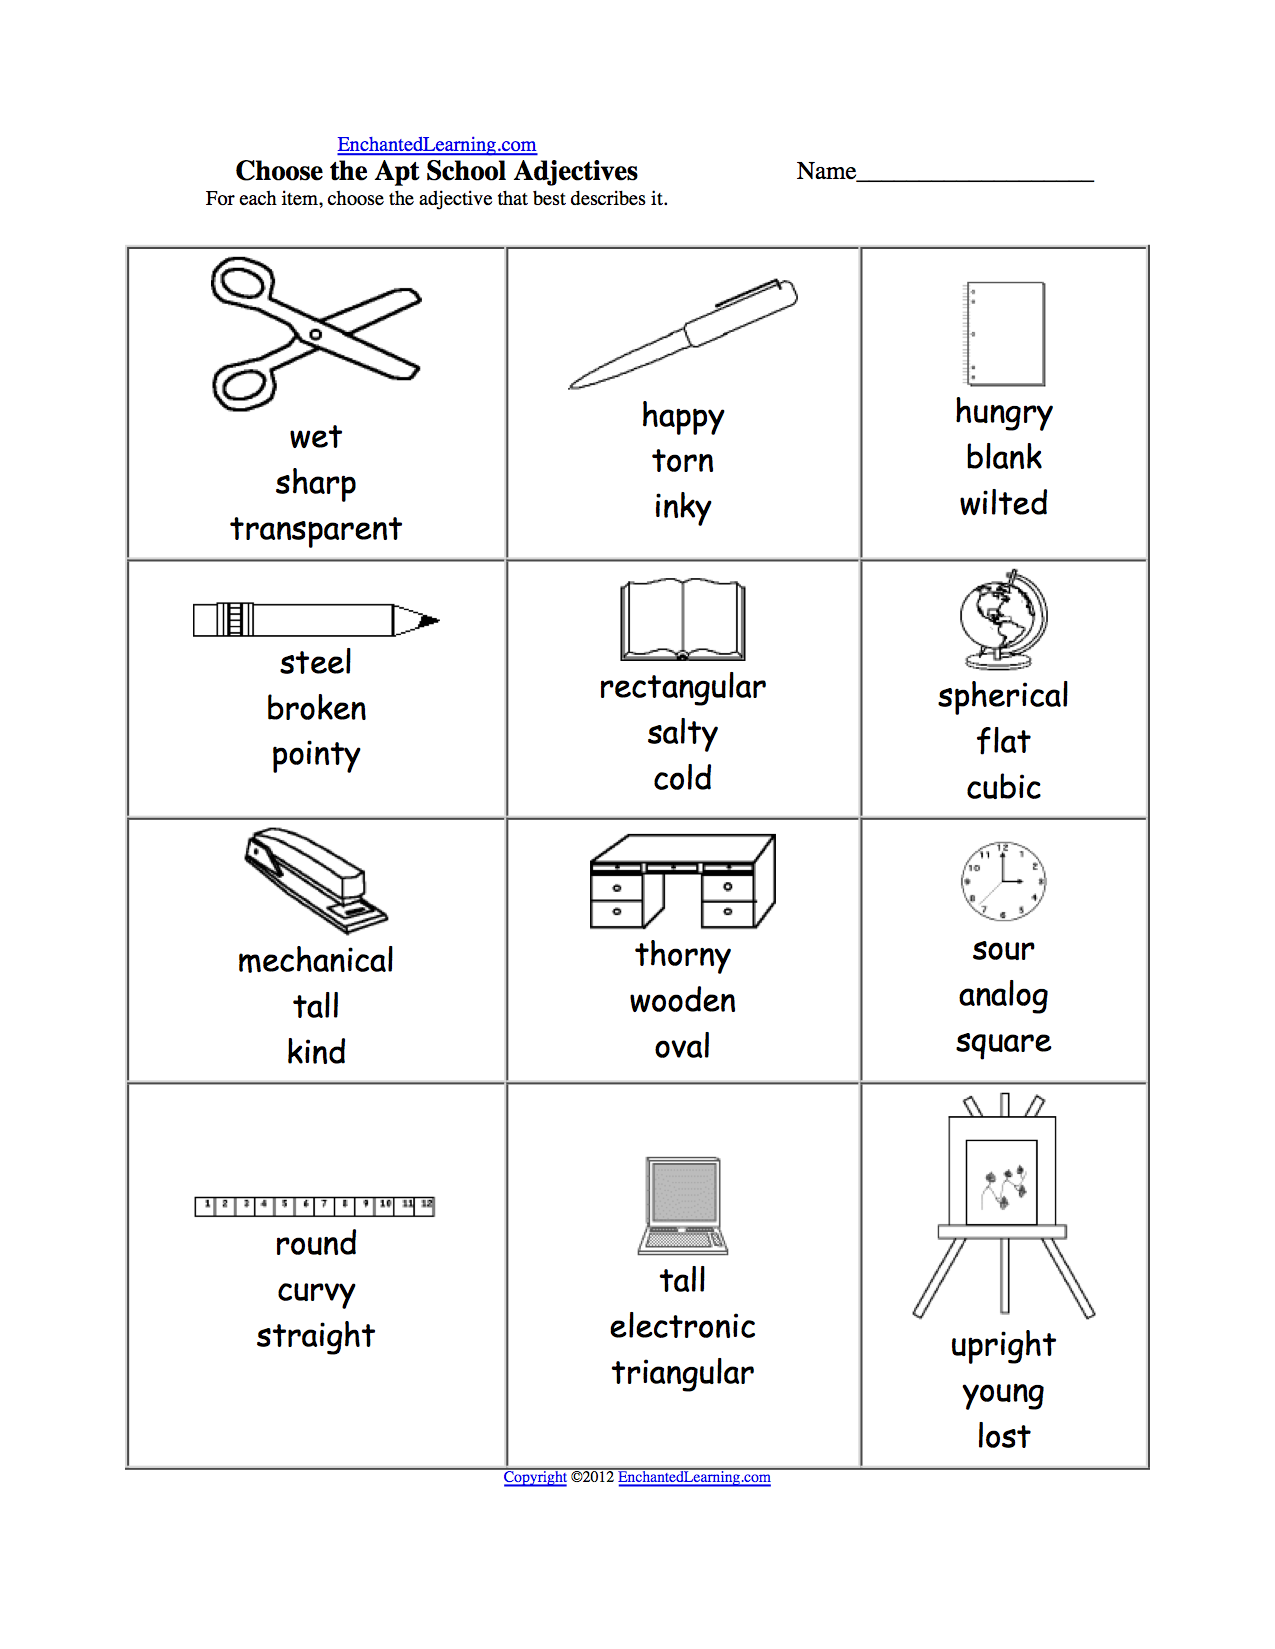 Printables School Worksheets To Print pick the apt adjective worksheets to print enchantedlearning com